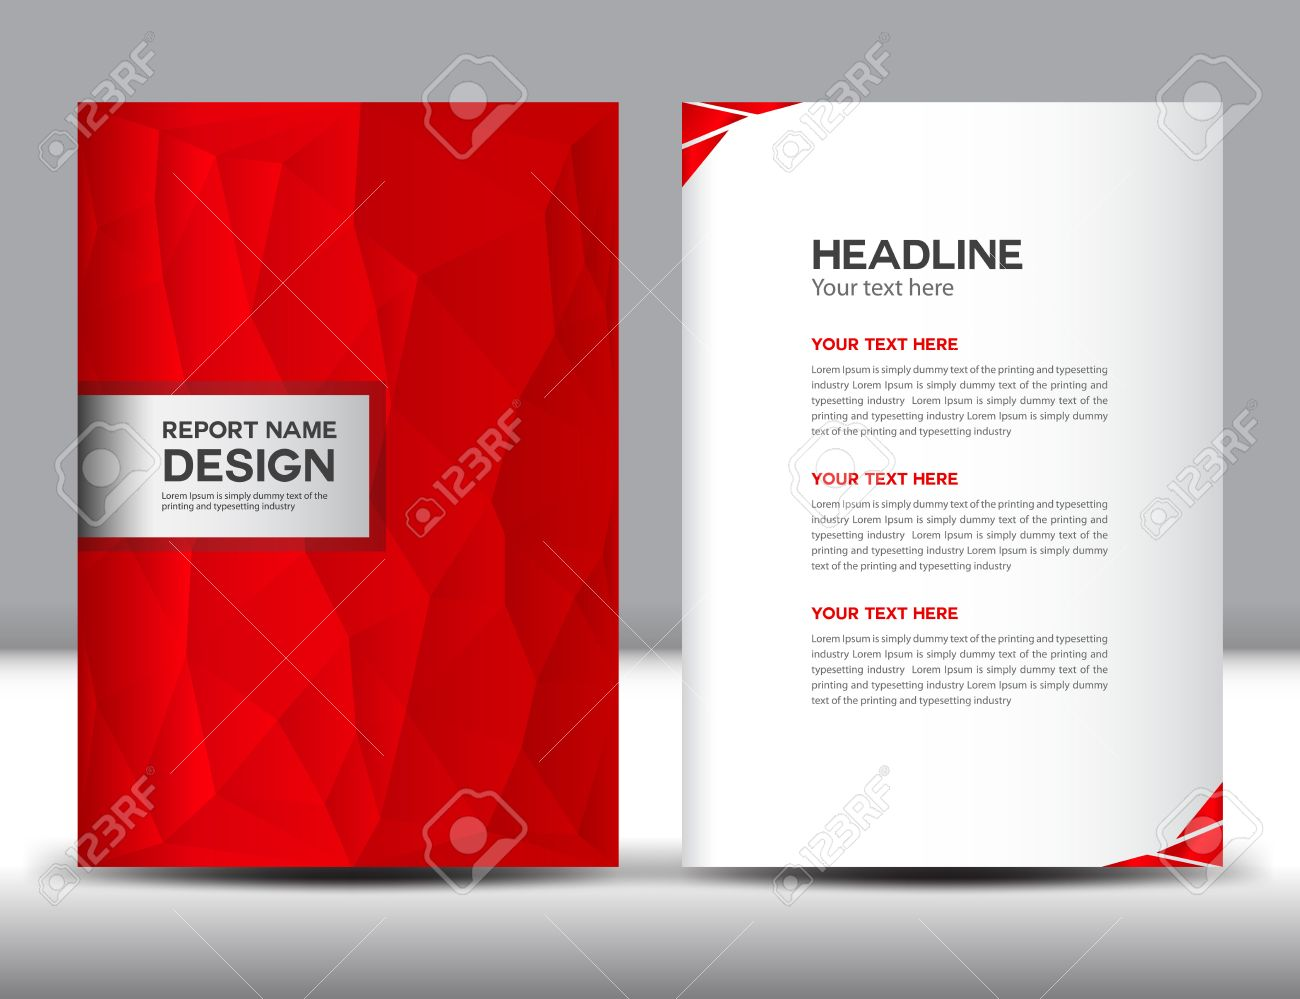 red cover annual report template polygon background brochure red cover annual report template polygon background brochure design cover template design